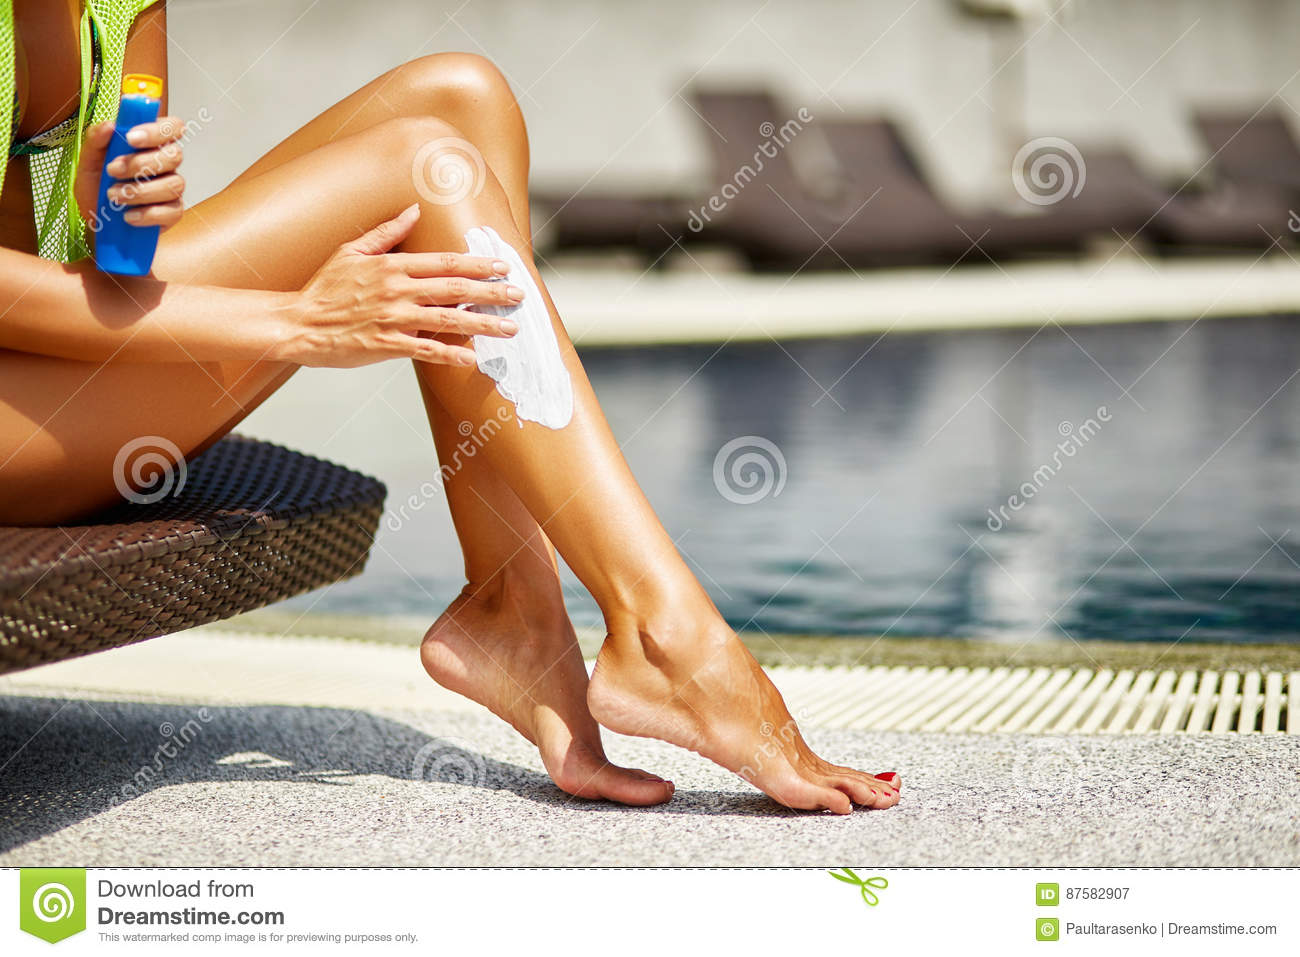 Woman applying sunscreen on her smooth tanned legs